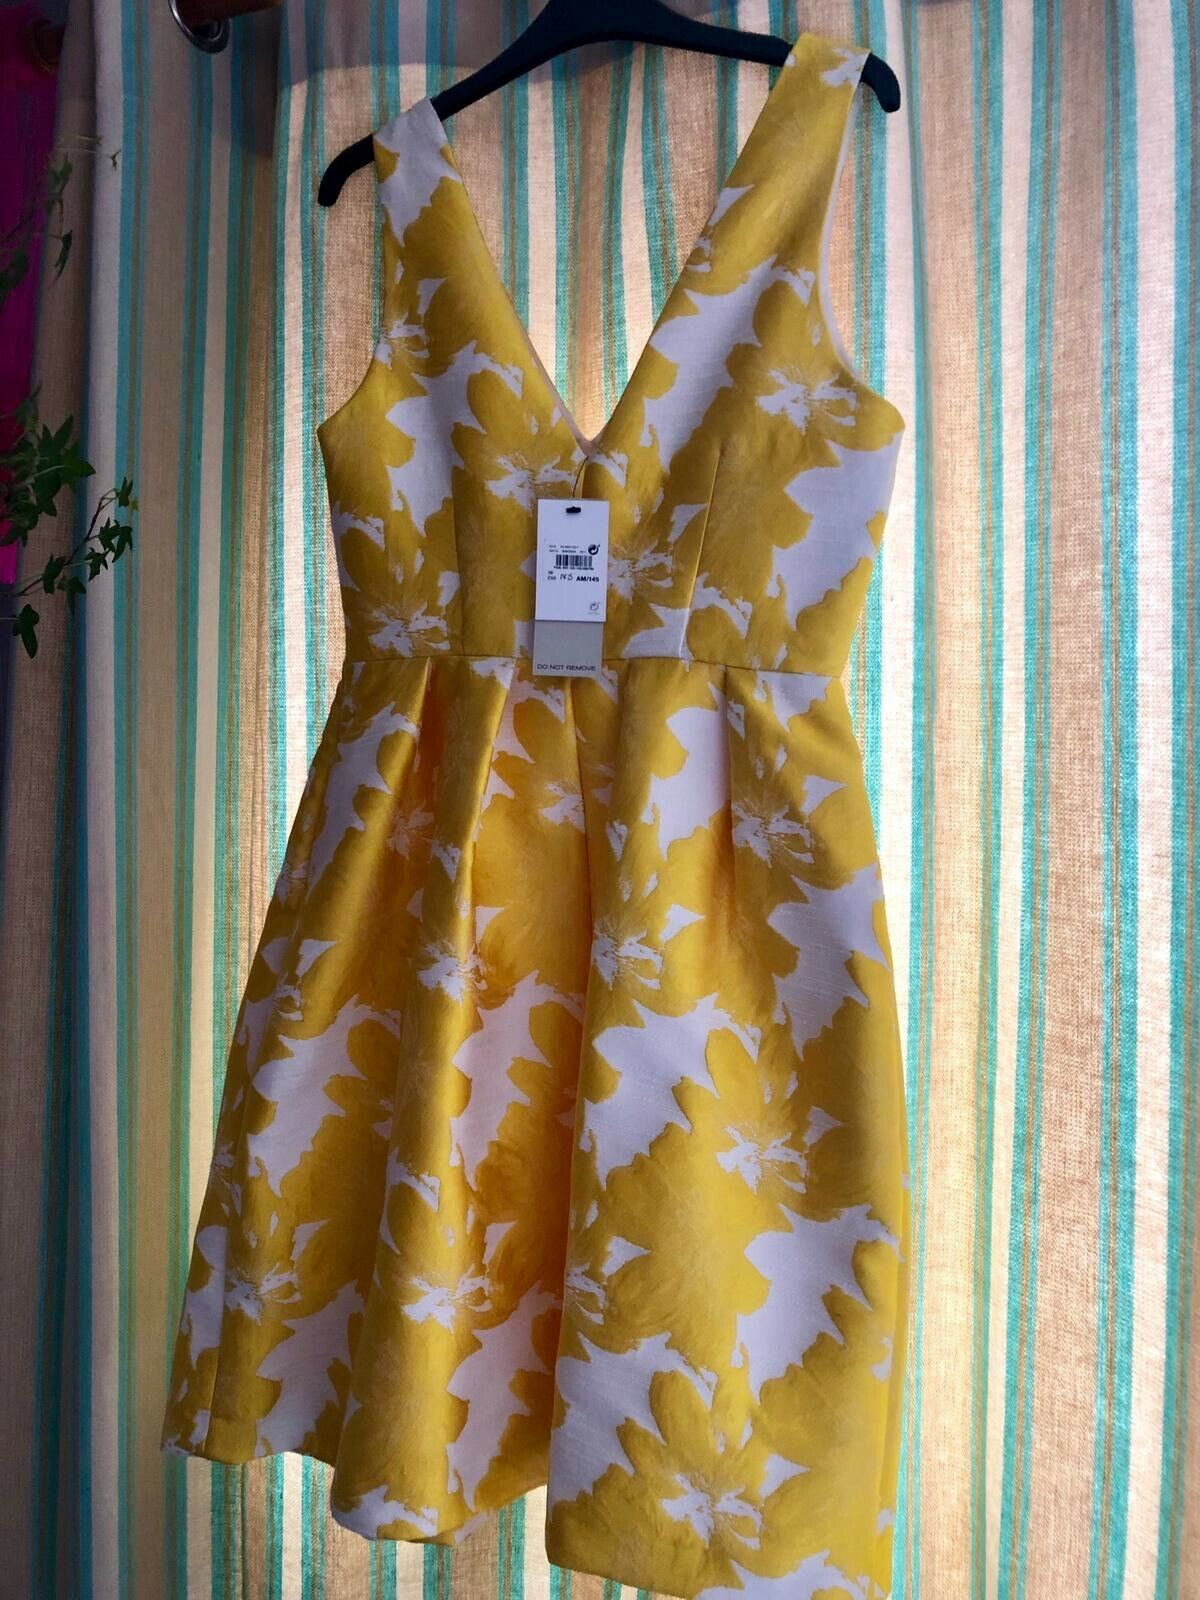 New With TagsNEXTYellow Jacquard dress, size 10, floral white & Yellow